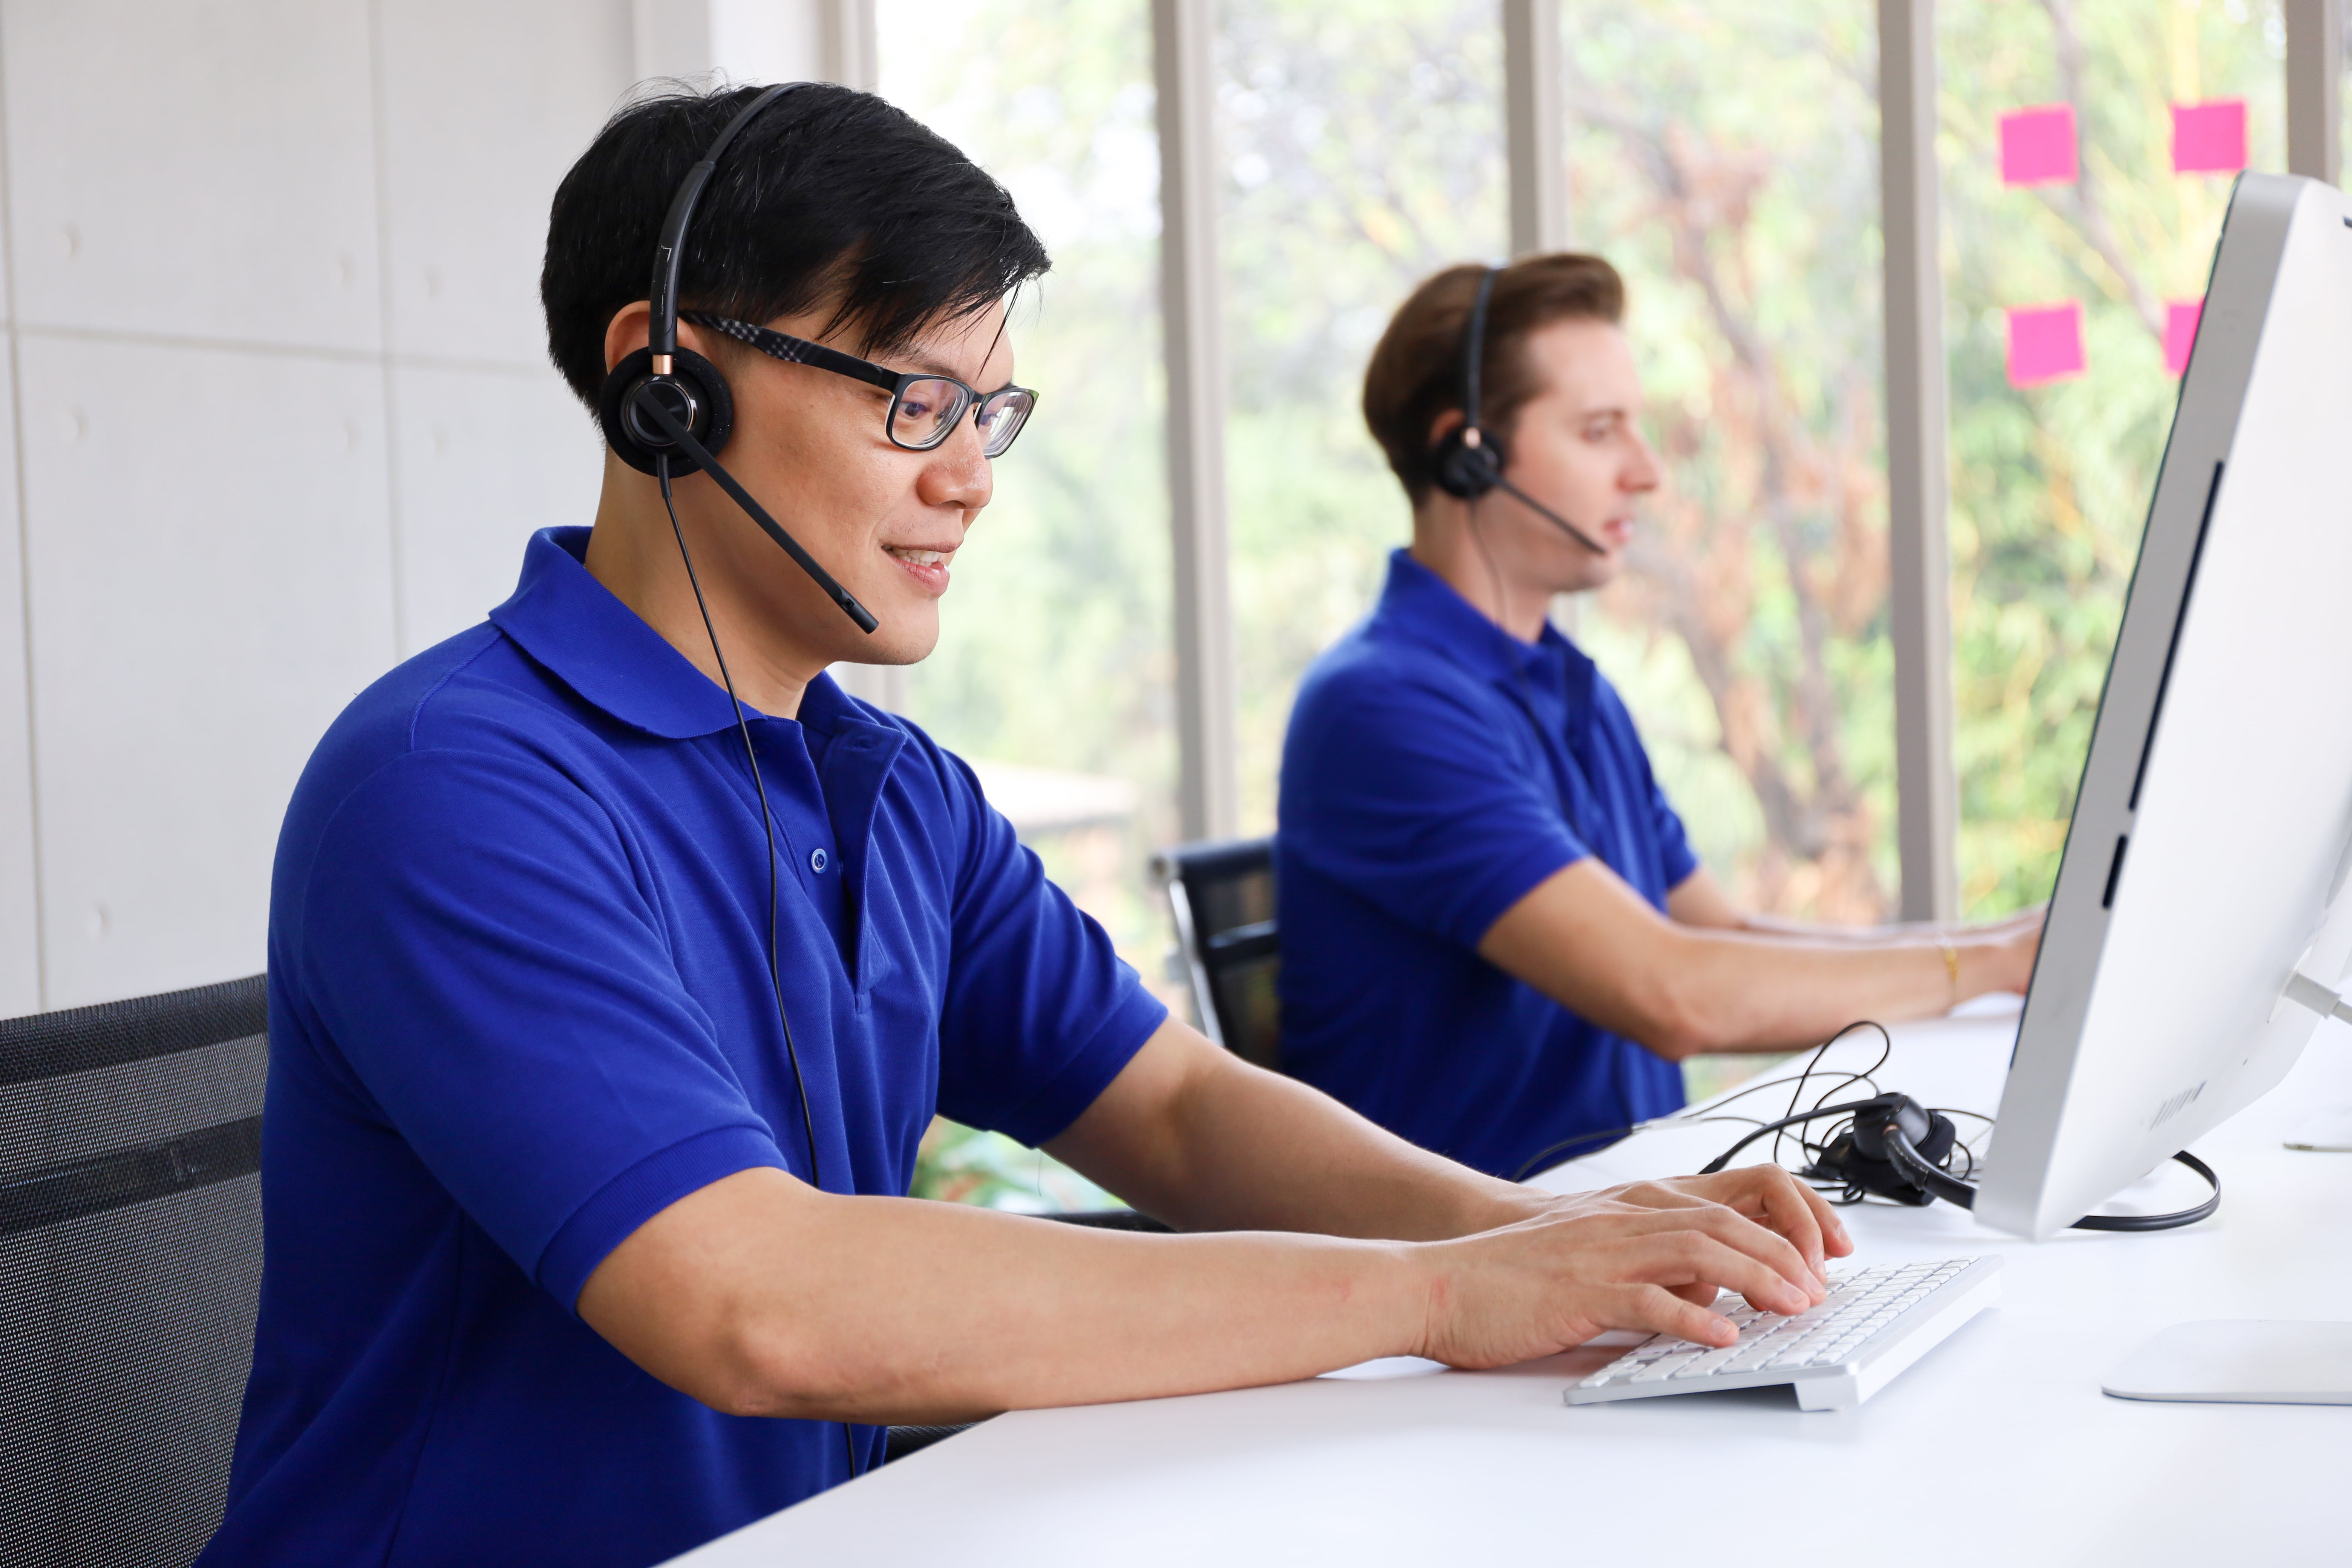 IT Help Desk Outsourcing - More Manpower